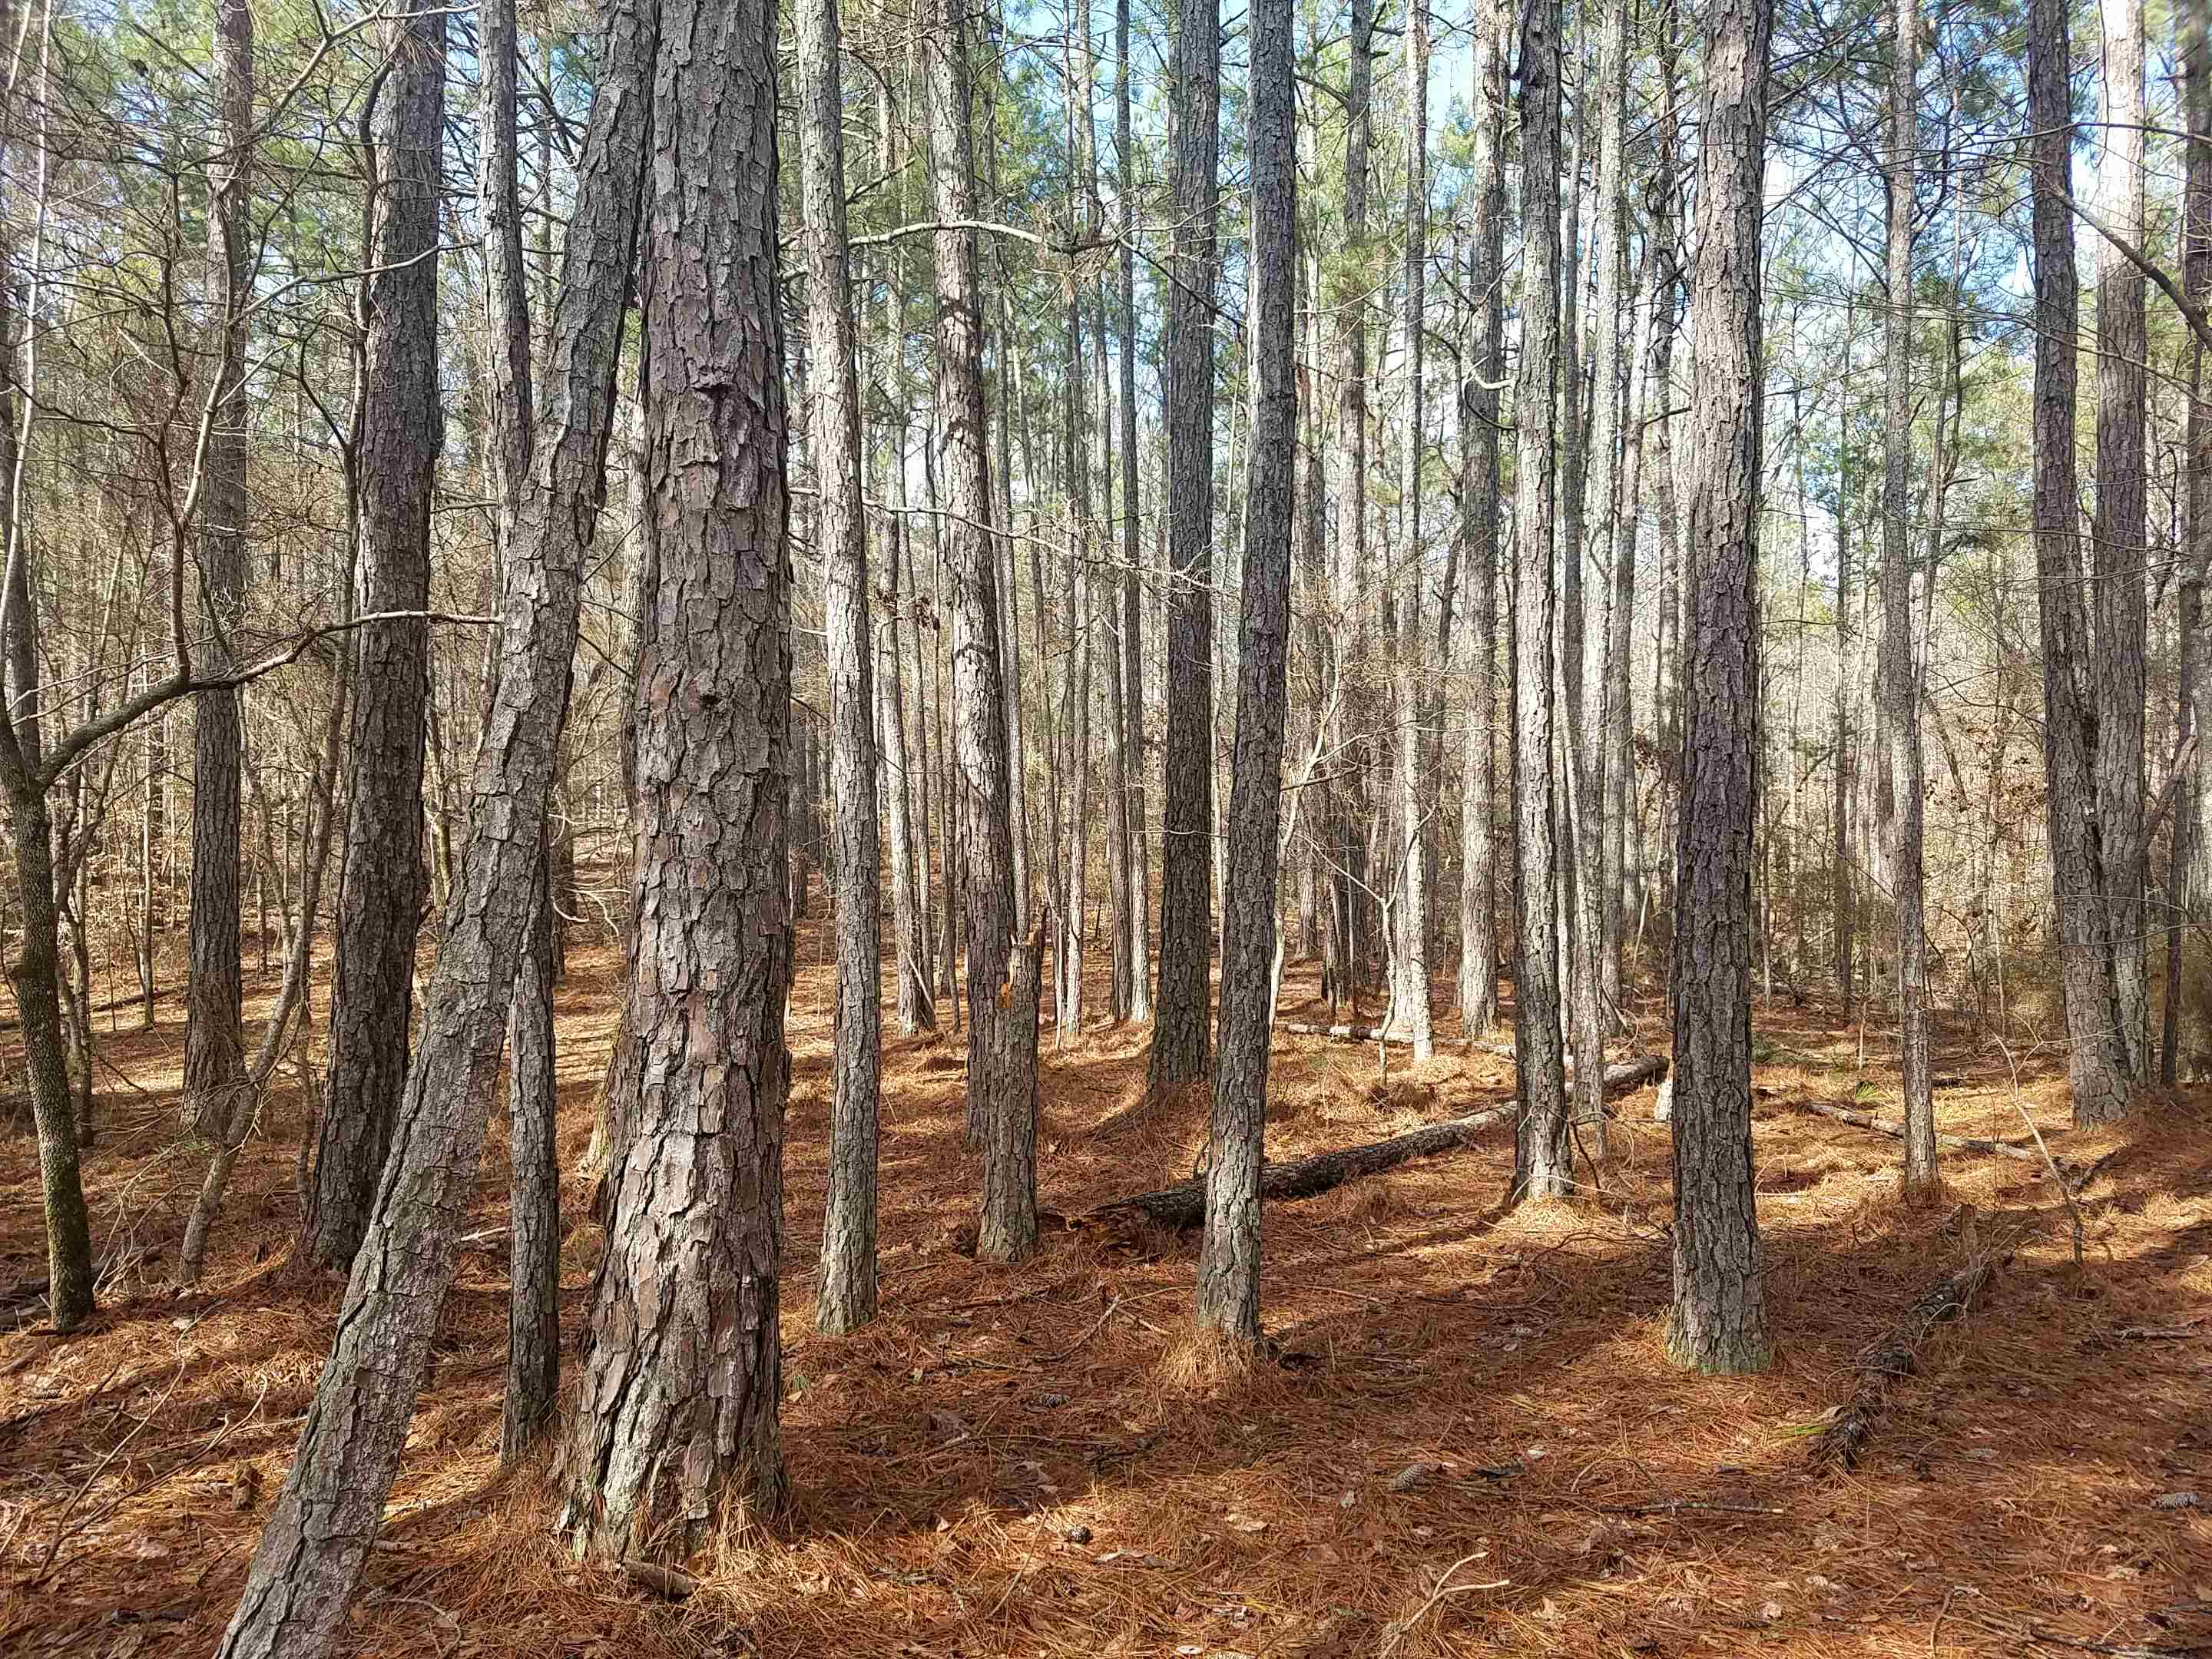 A view of some of the pine stands.  There is significant timber value - call for appraisal